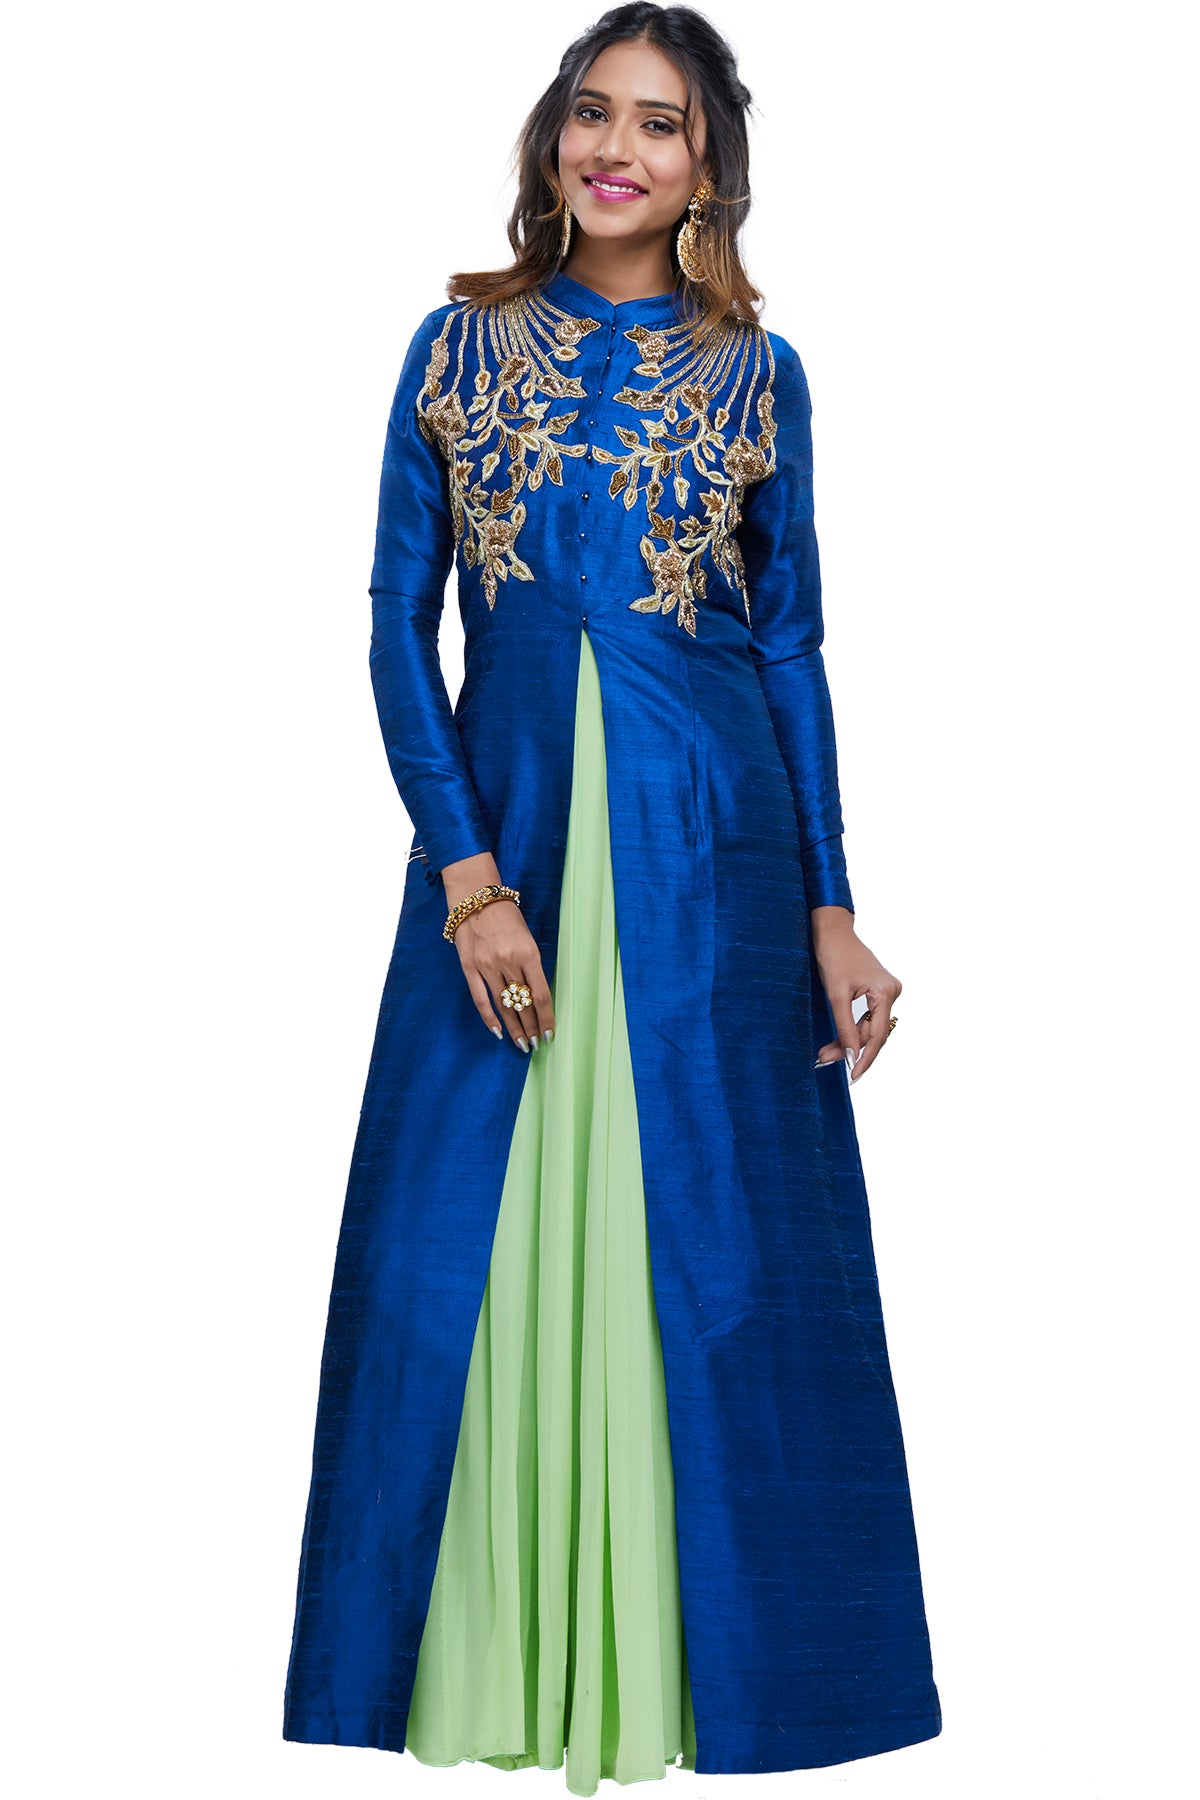 We're talking raw, regal beauty in this piece with its blue full-sleeved raw silk embroidered jacket with zardosi work over a green georgette sleeveless anarkali gown.